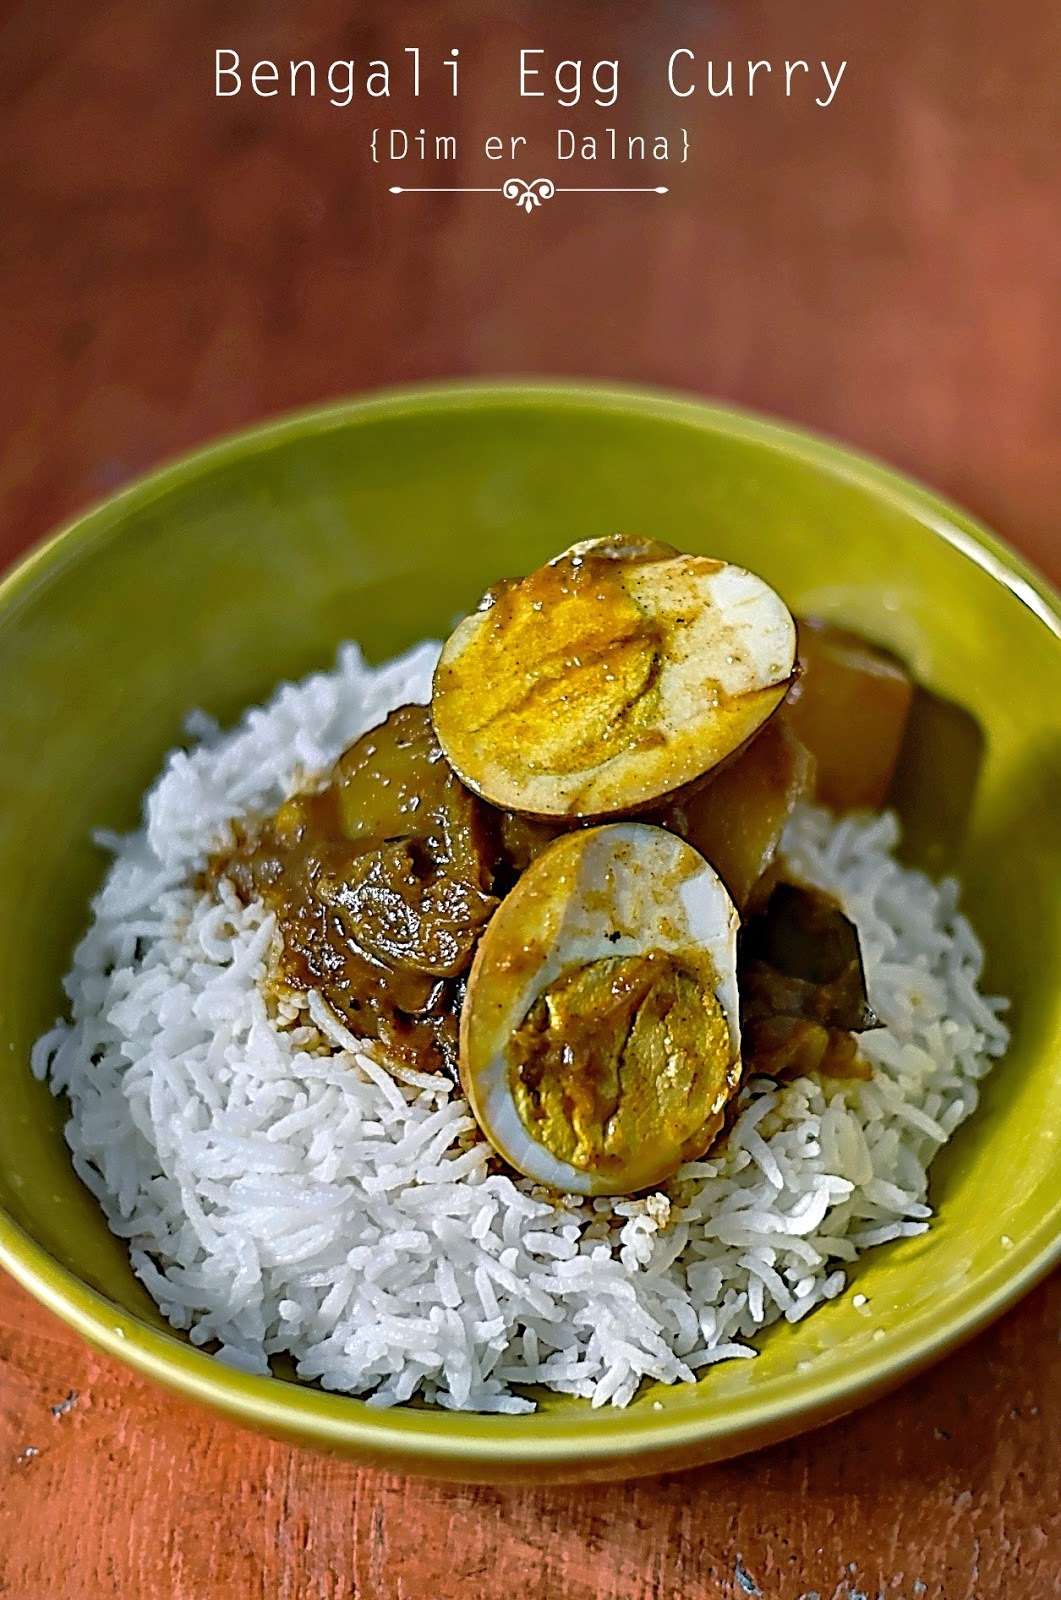 Recipe for Bengali Egg Curry {Dim er Dalna}